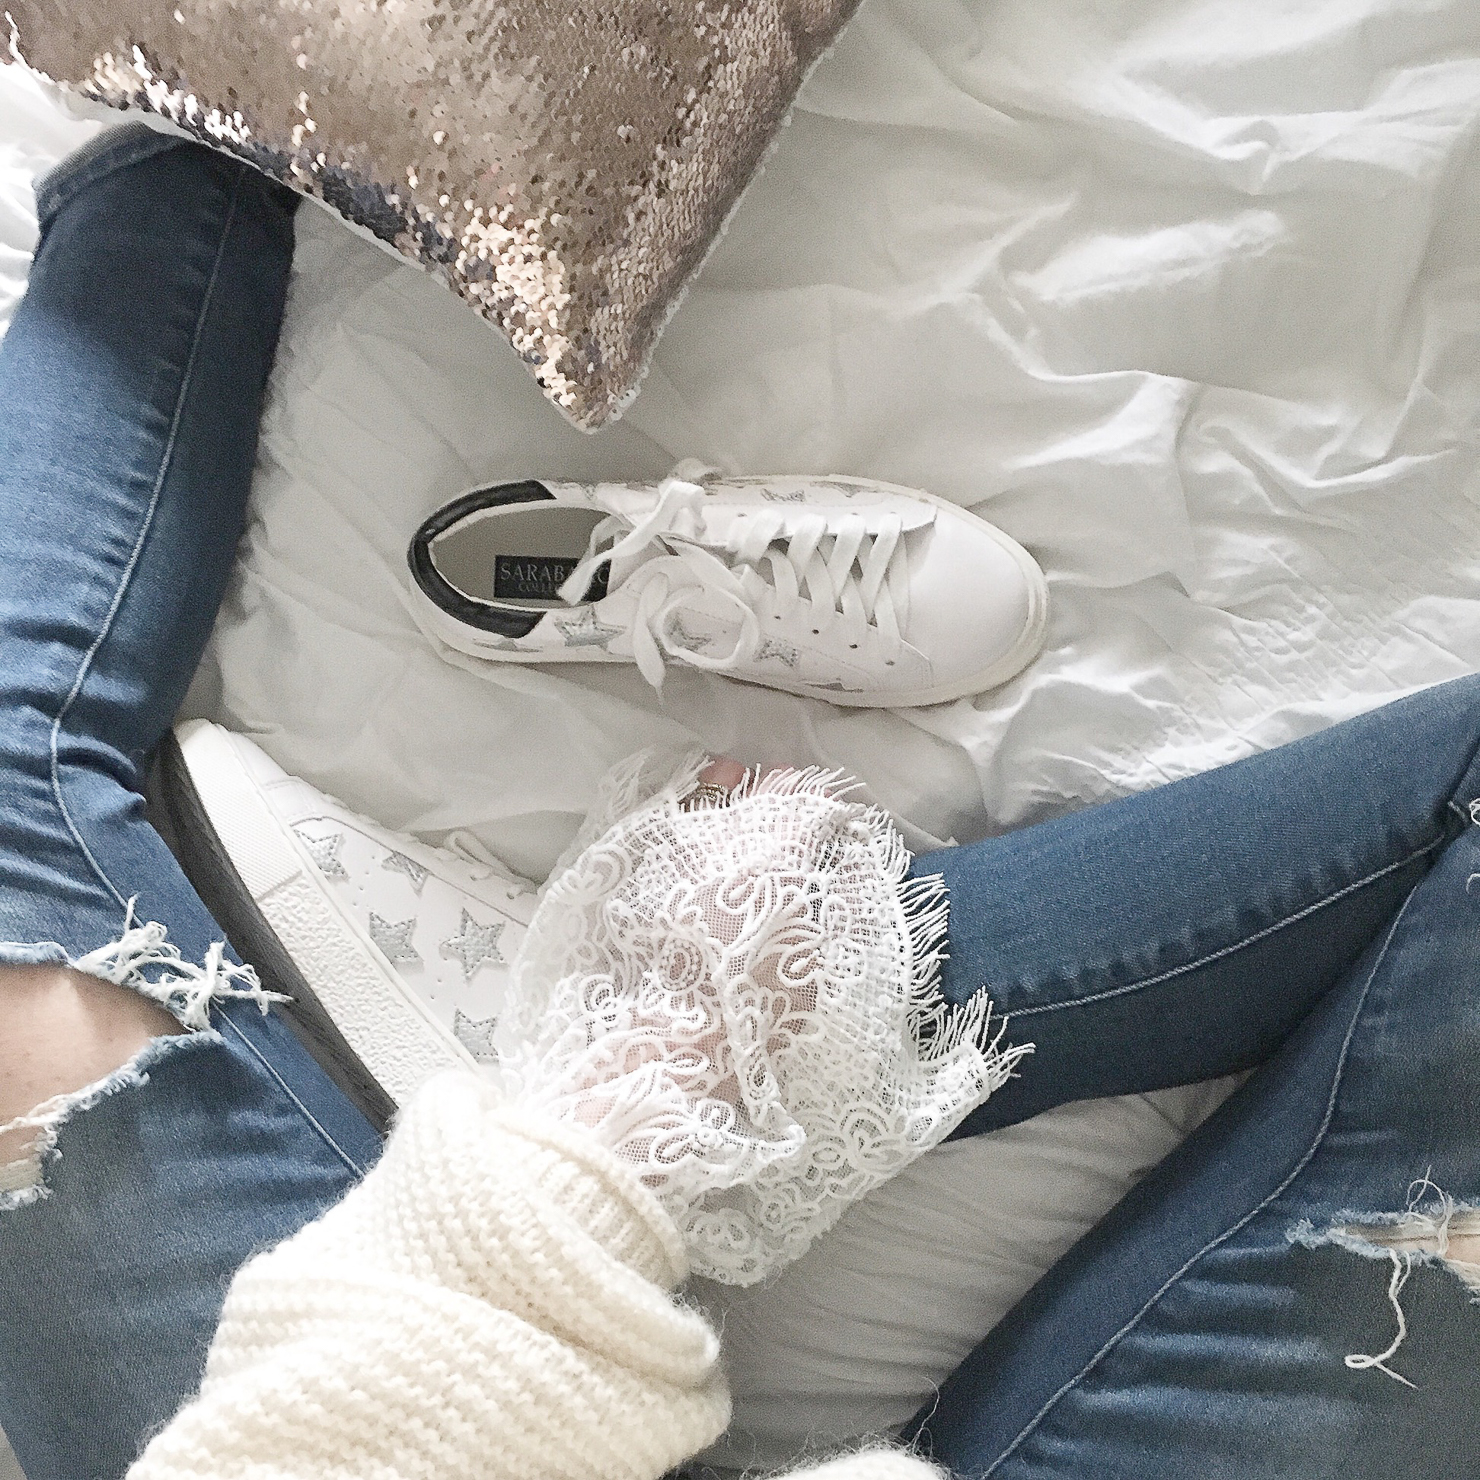 instagram-cozy-sweater-lace-details-sequin-throw-pillow-star-sneakers